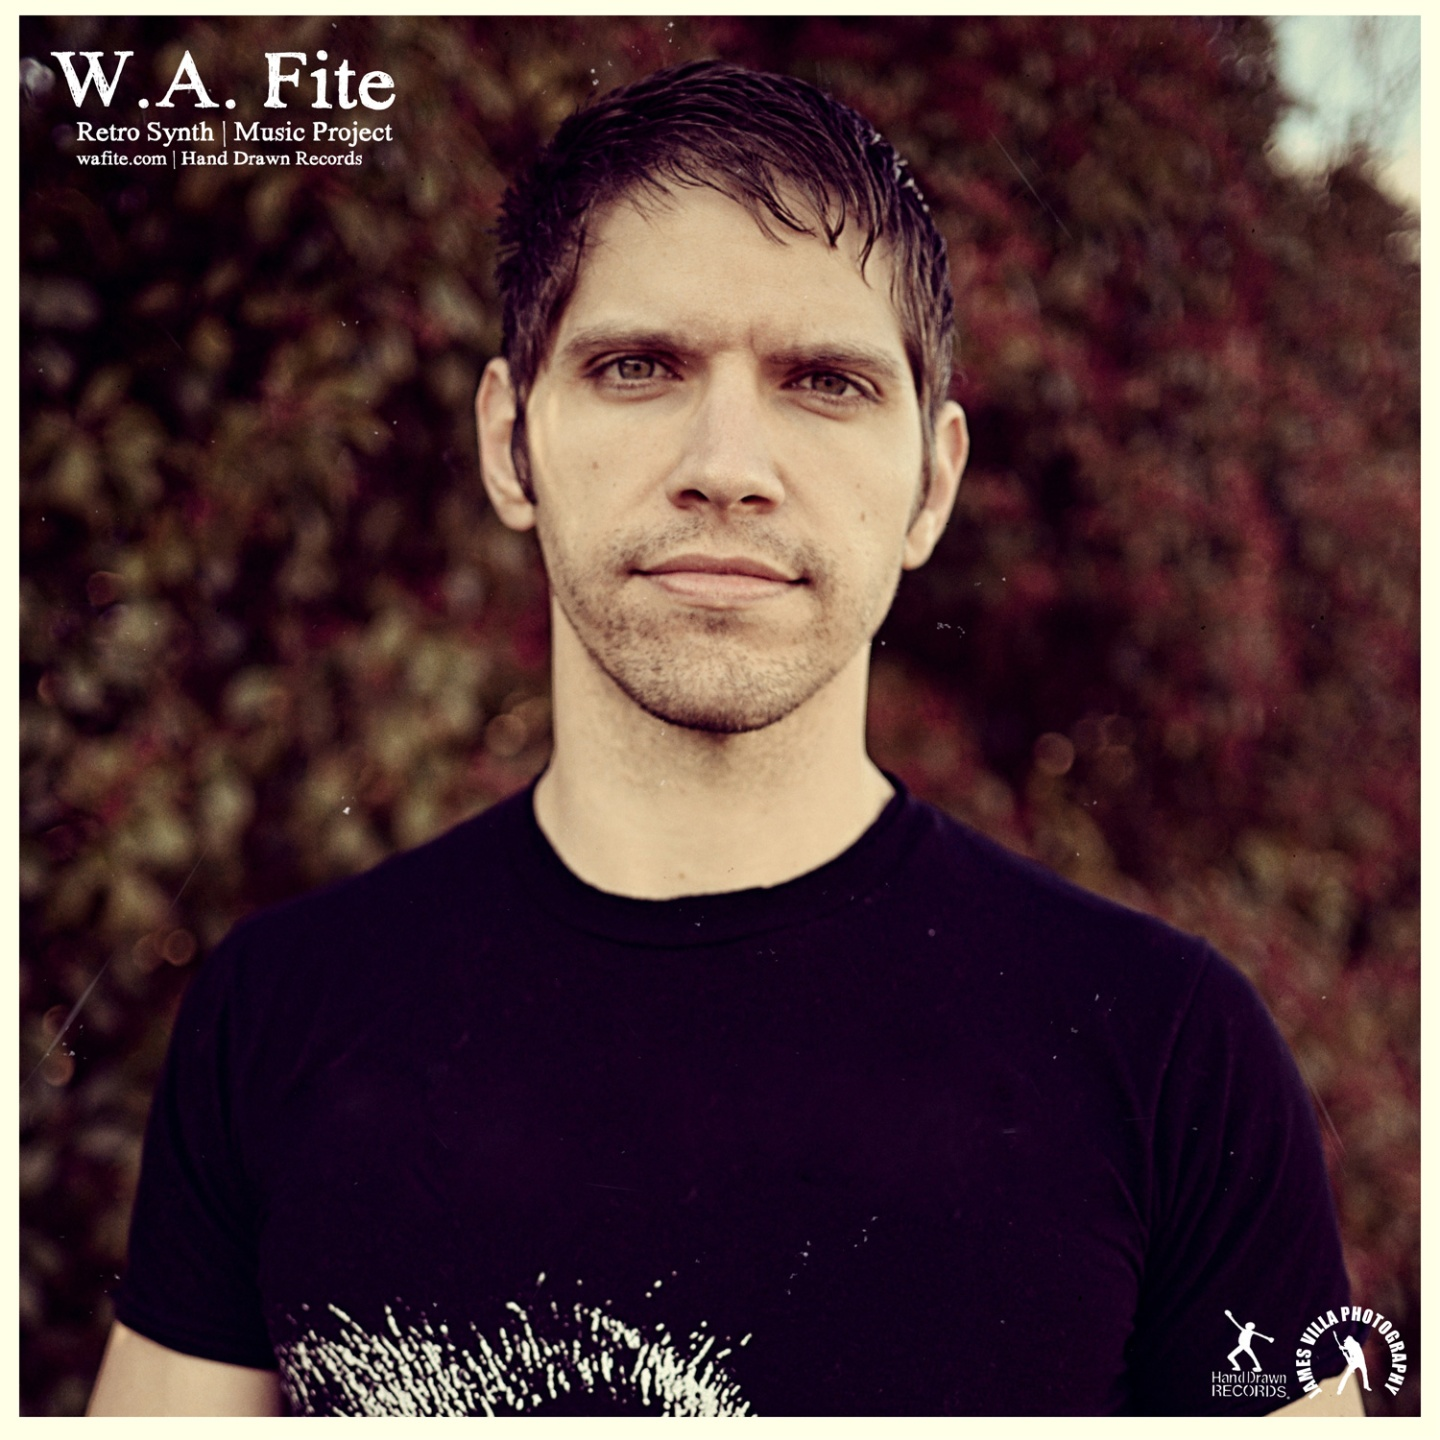 W.A. Fite - © Hand Drawn Records 2013 | James Villa Photography